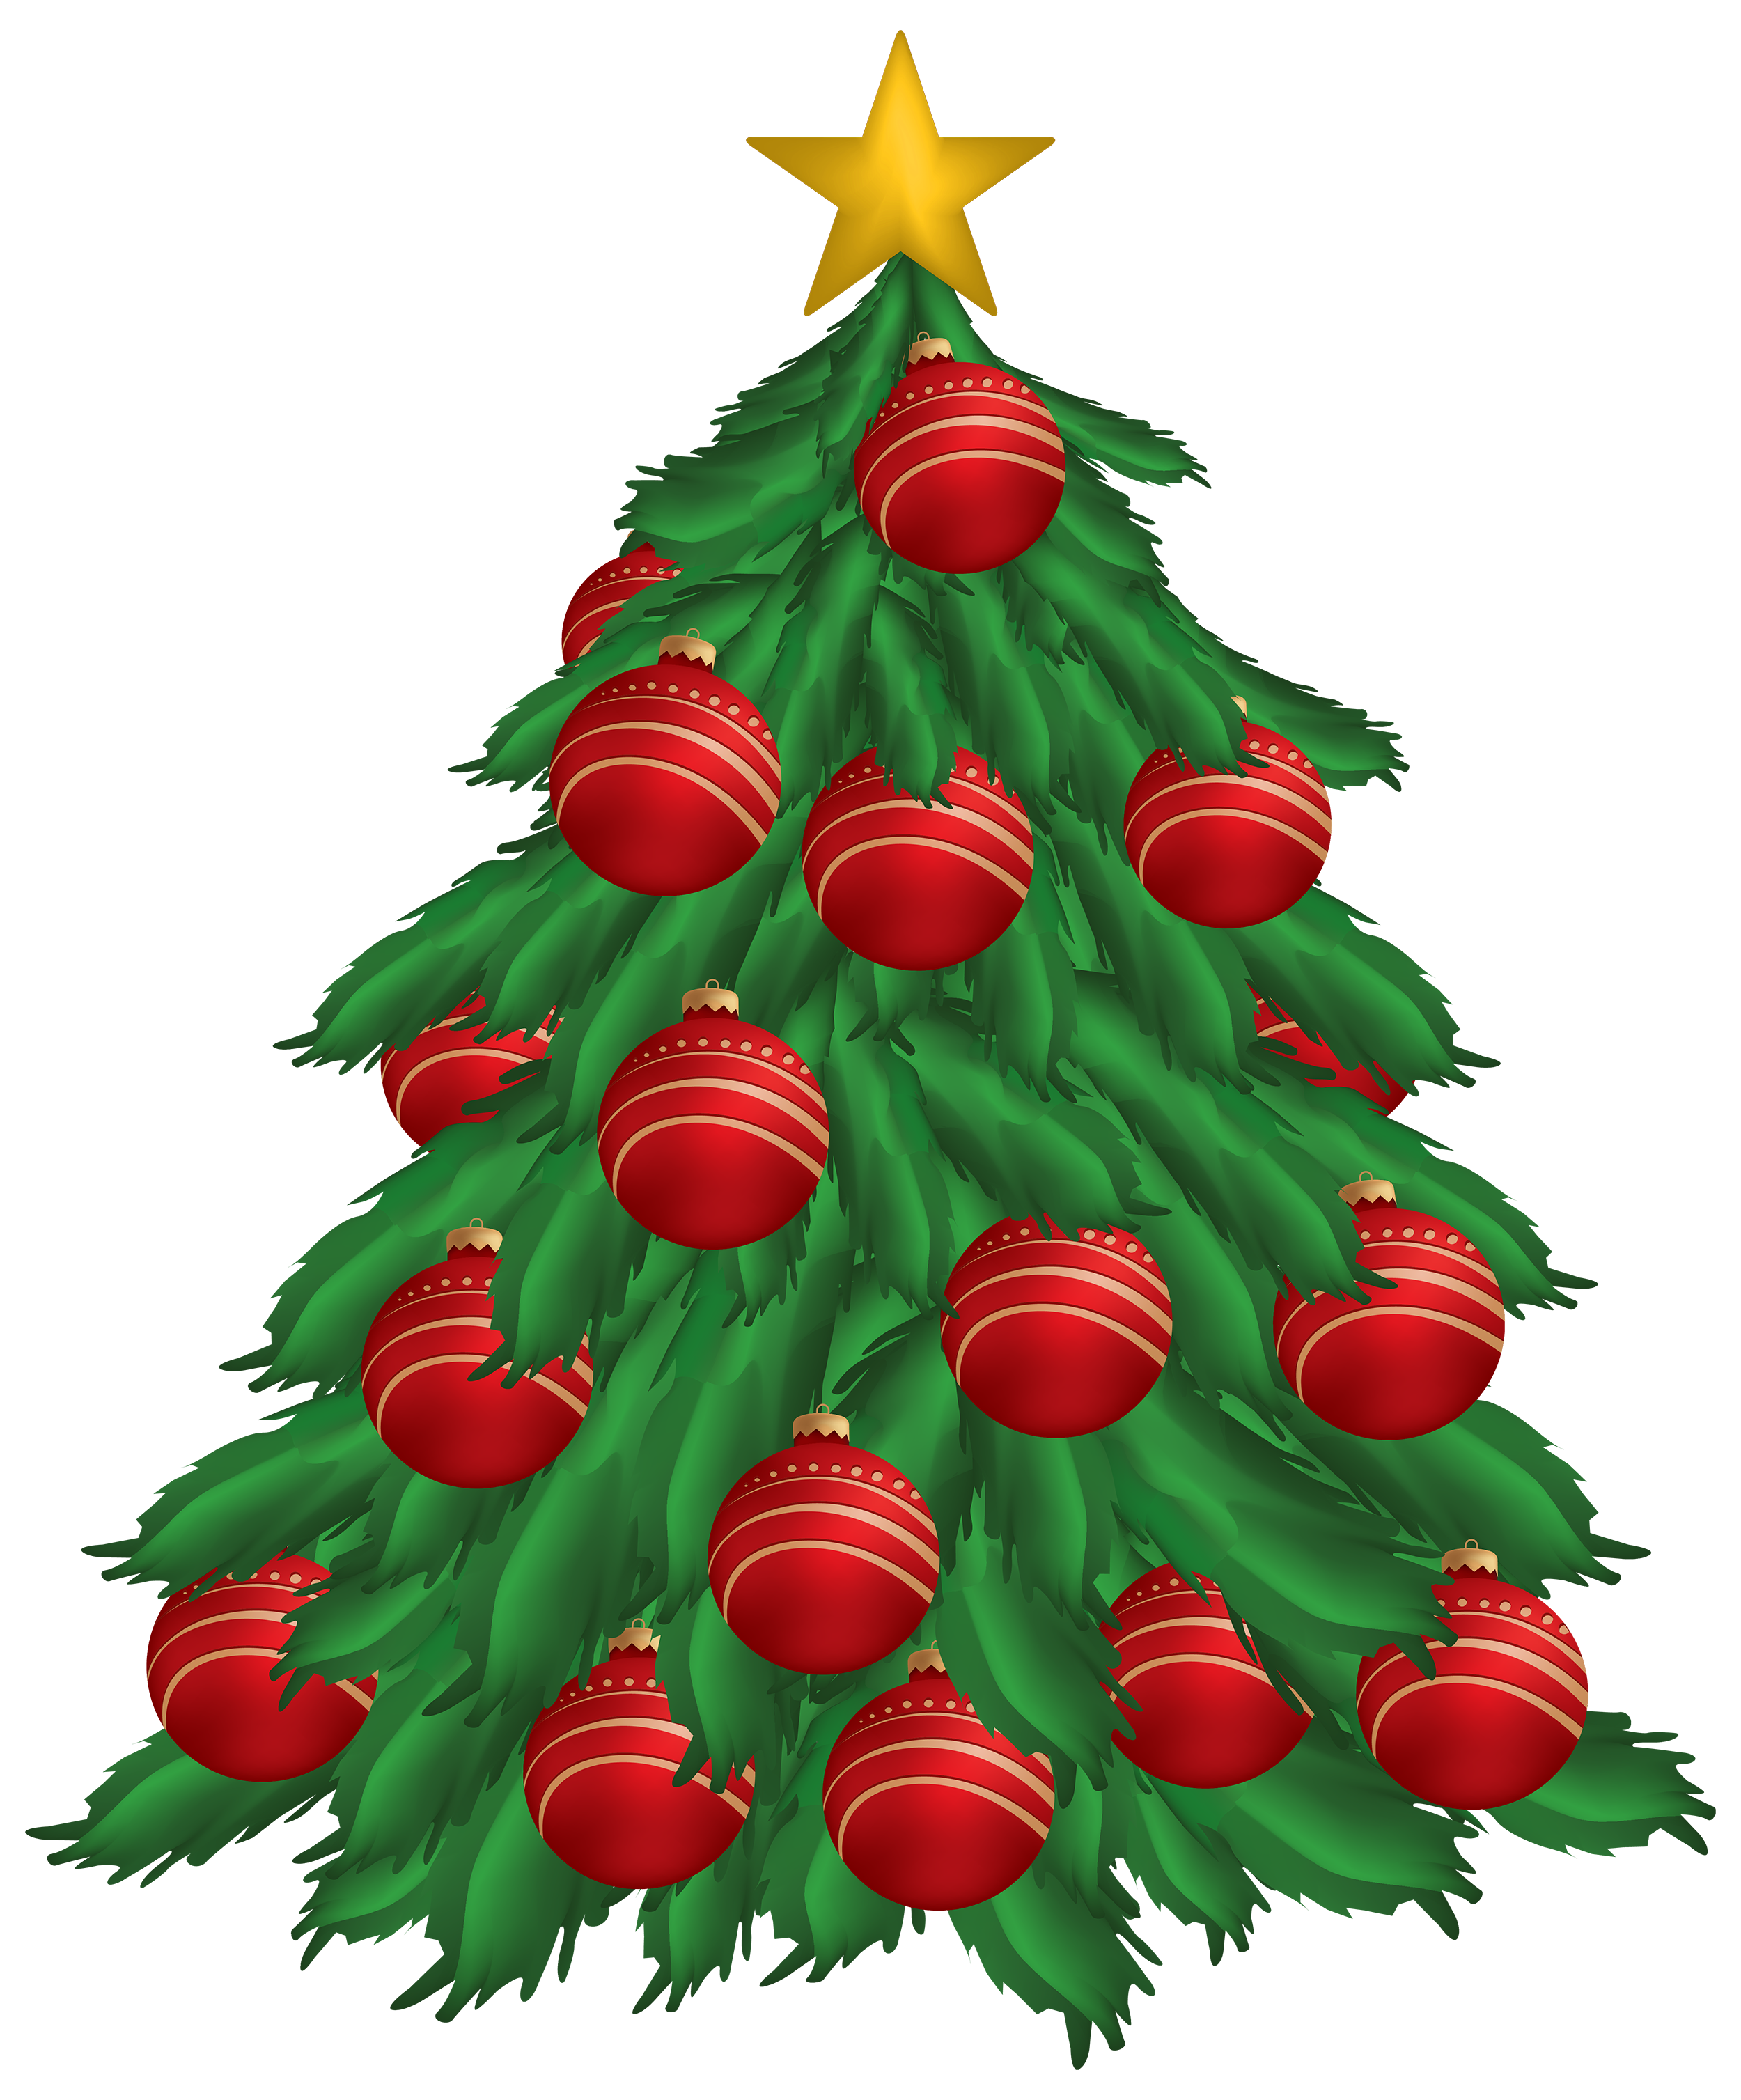 Christmas clipart png png free download Christmas Tree Ornaments Clipart at GetDrawings.com | Free for ... png free download